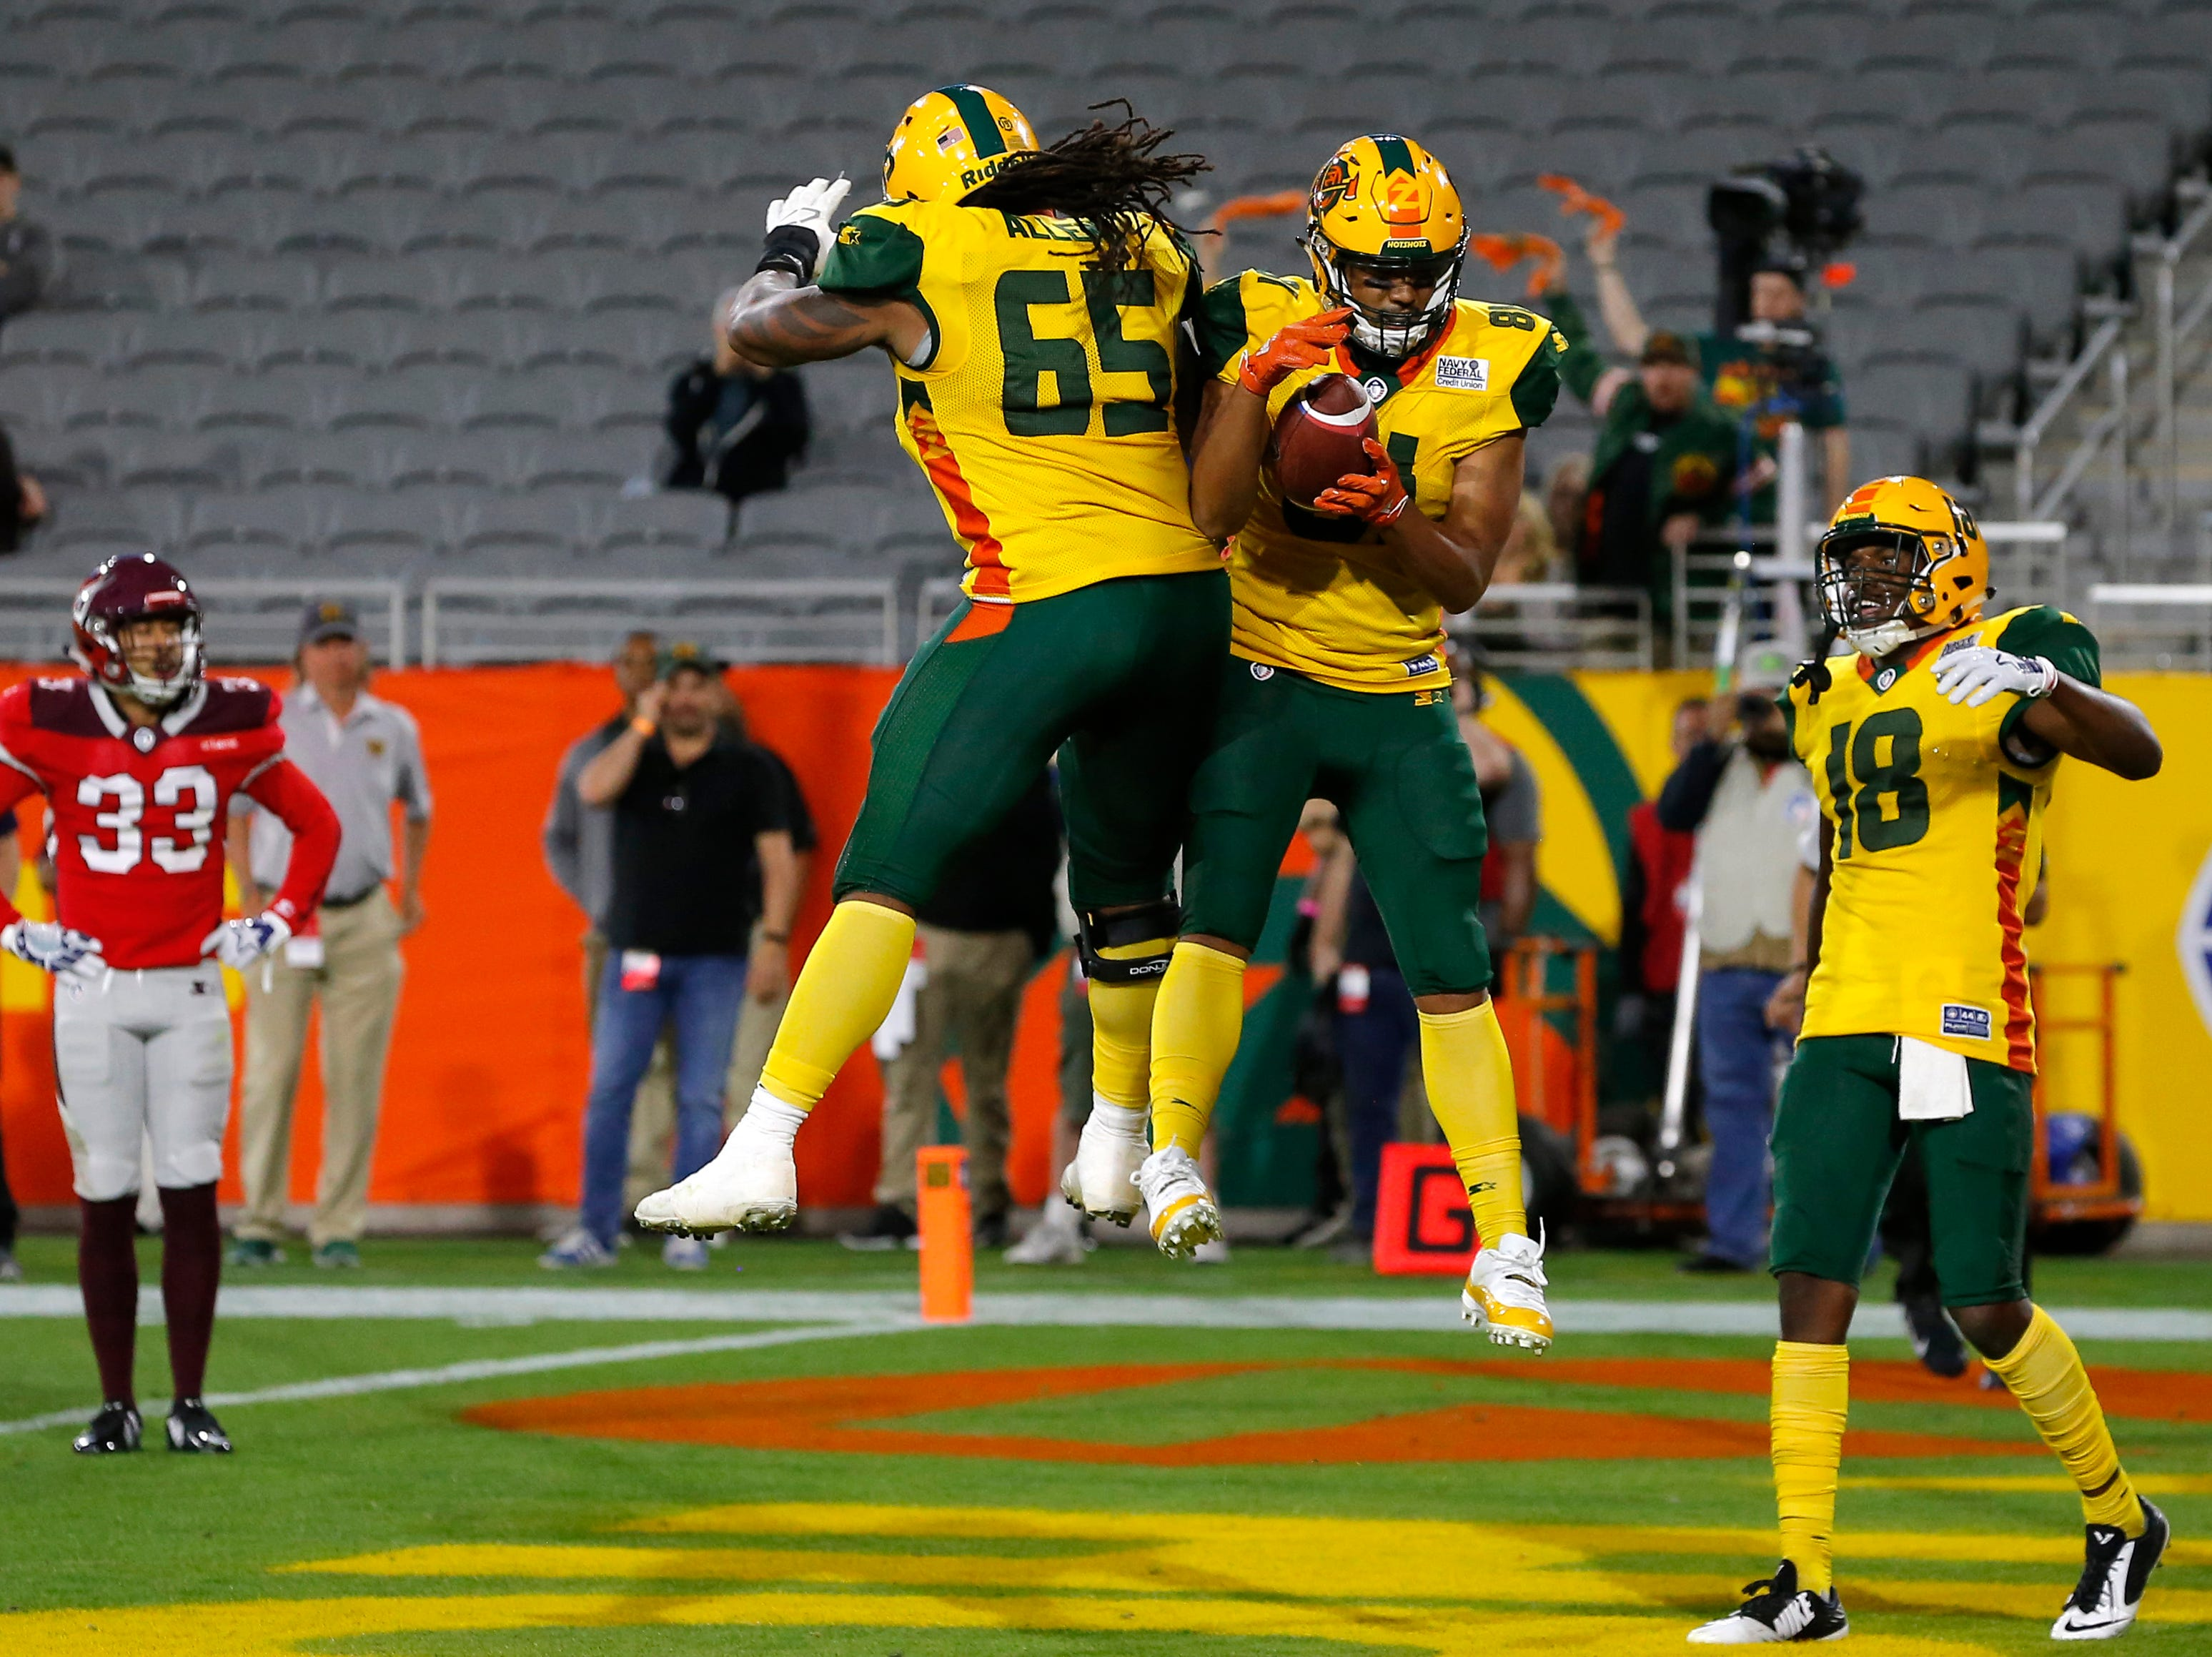 Arizona Hotshots tight end Thomas Duarte (81) celebrates with Josh Allen (65) after scoring a touchdown against the San Antonio Commanders in the second half during an AAF football game, Sunday, March 10, 2019, at Sun Devil Stadium in Phoenix. San Antonio defeated Arizona 29-25. (AP Photo/Rick Scuteri)